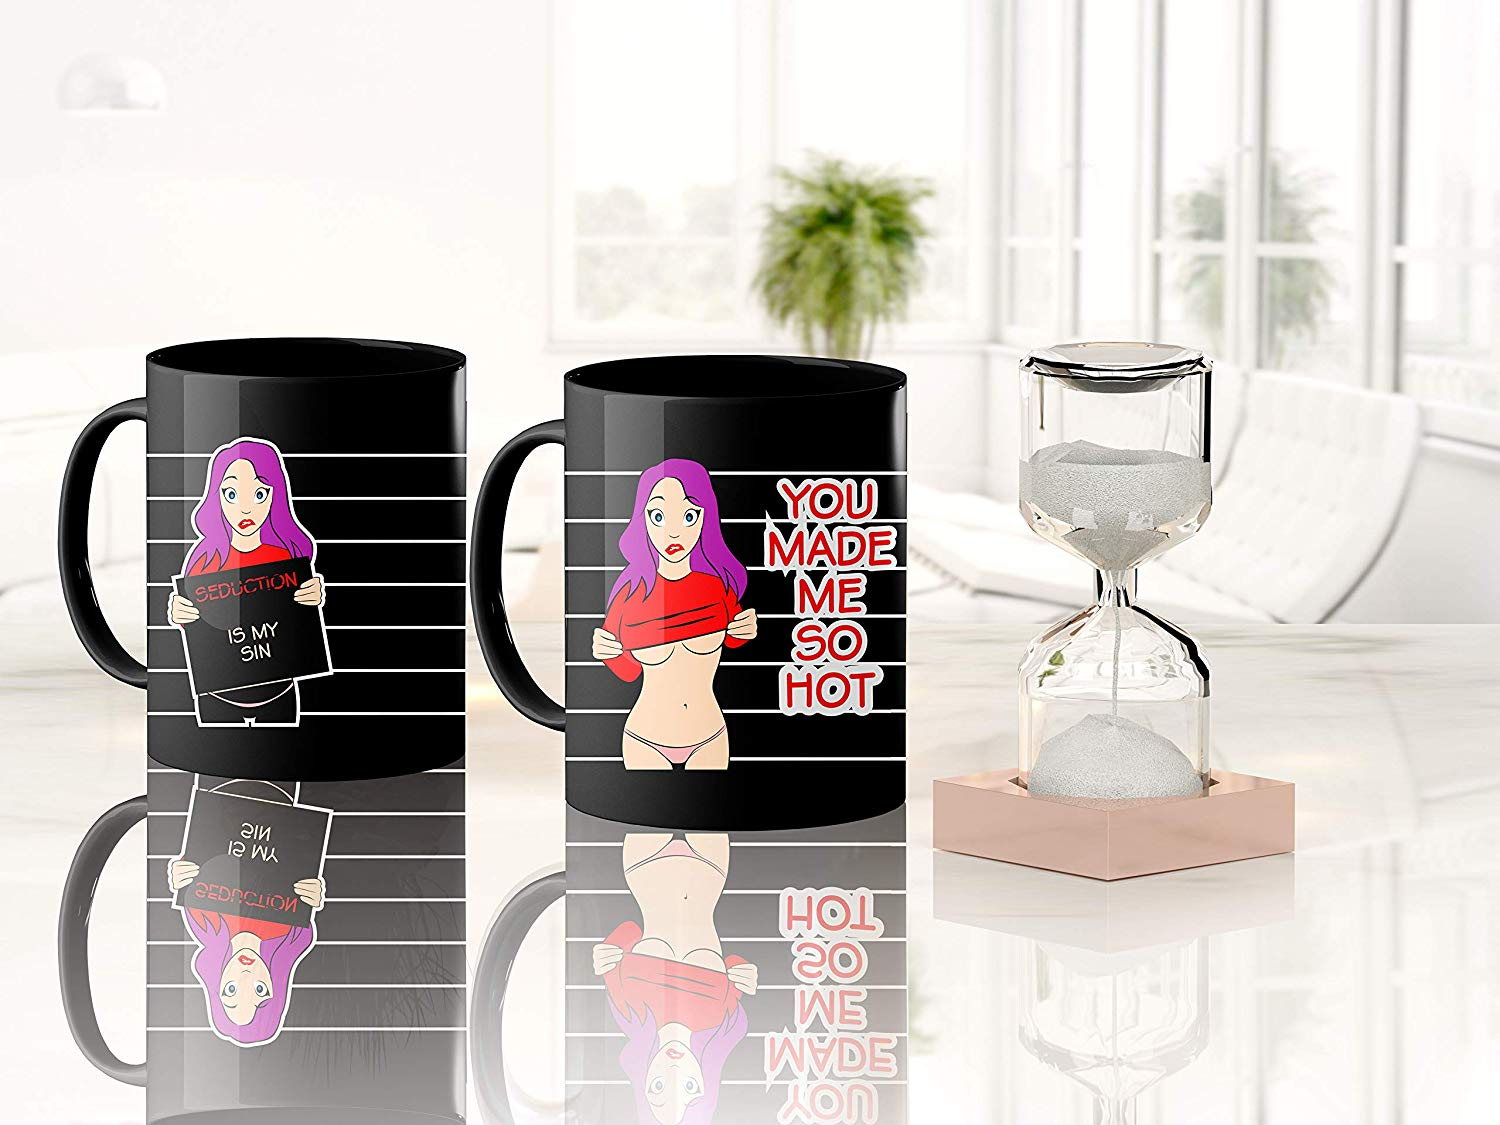 Heat Sensitive Color Changing Coffee Mug Funny Coffee Cup Hot Girl Design Funny Gift Idea B07D21CPTQ 4